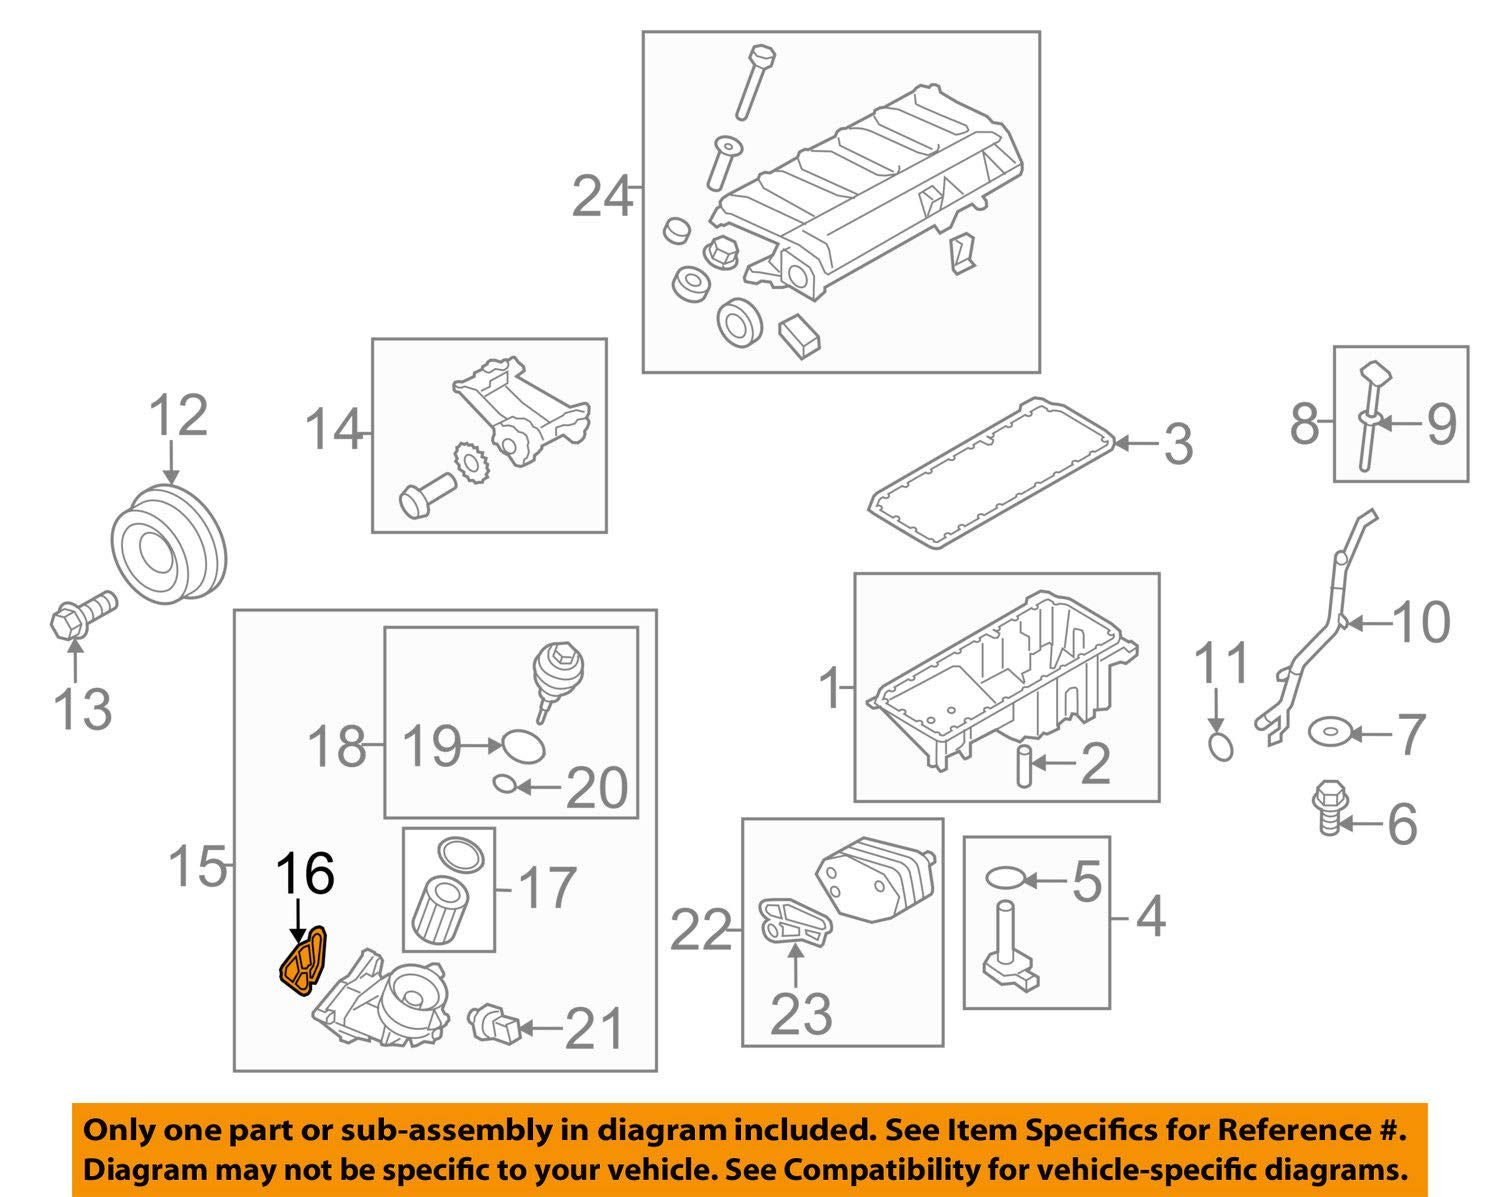 amazon com bmw 11 42 7 788 455, engine oil filter adapter L6 Engine Diagram jeep chrysler oem 97 01 cherokee 4 0l